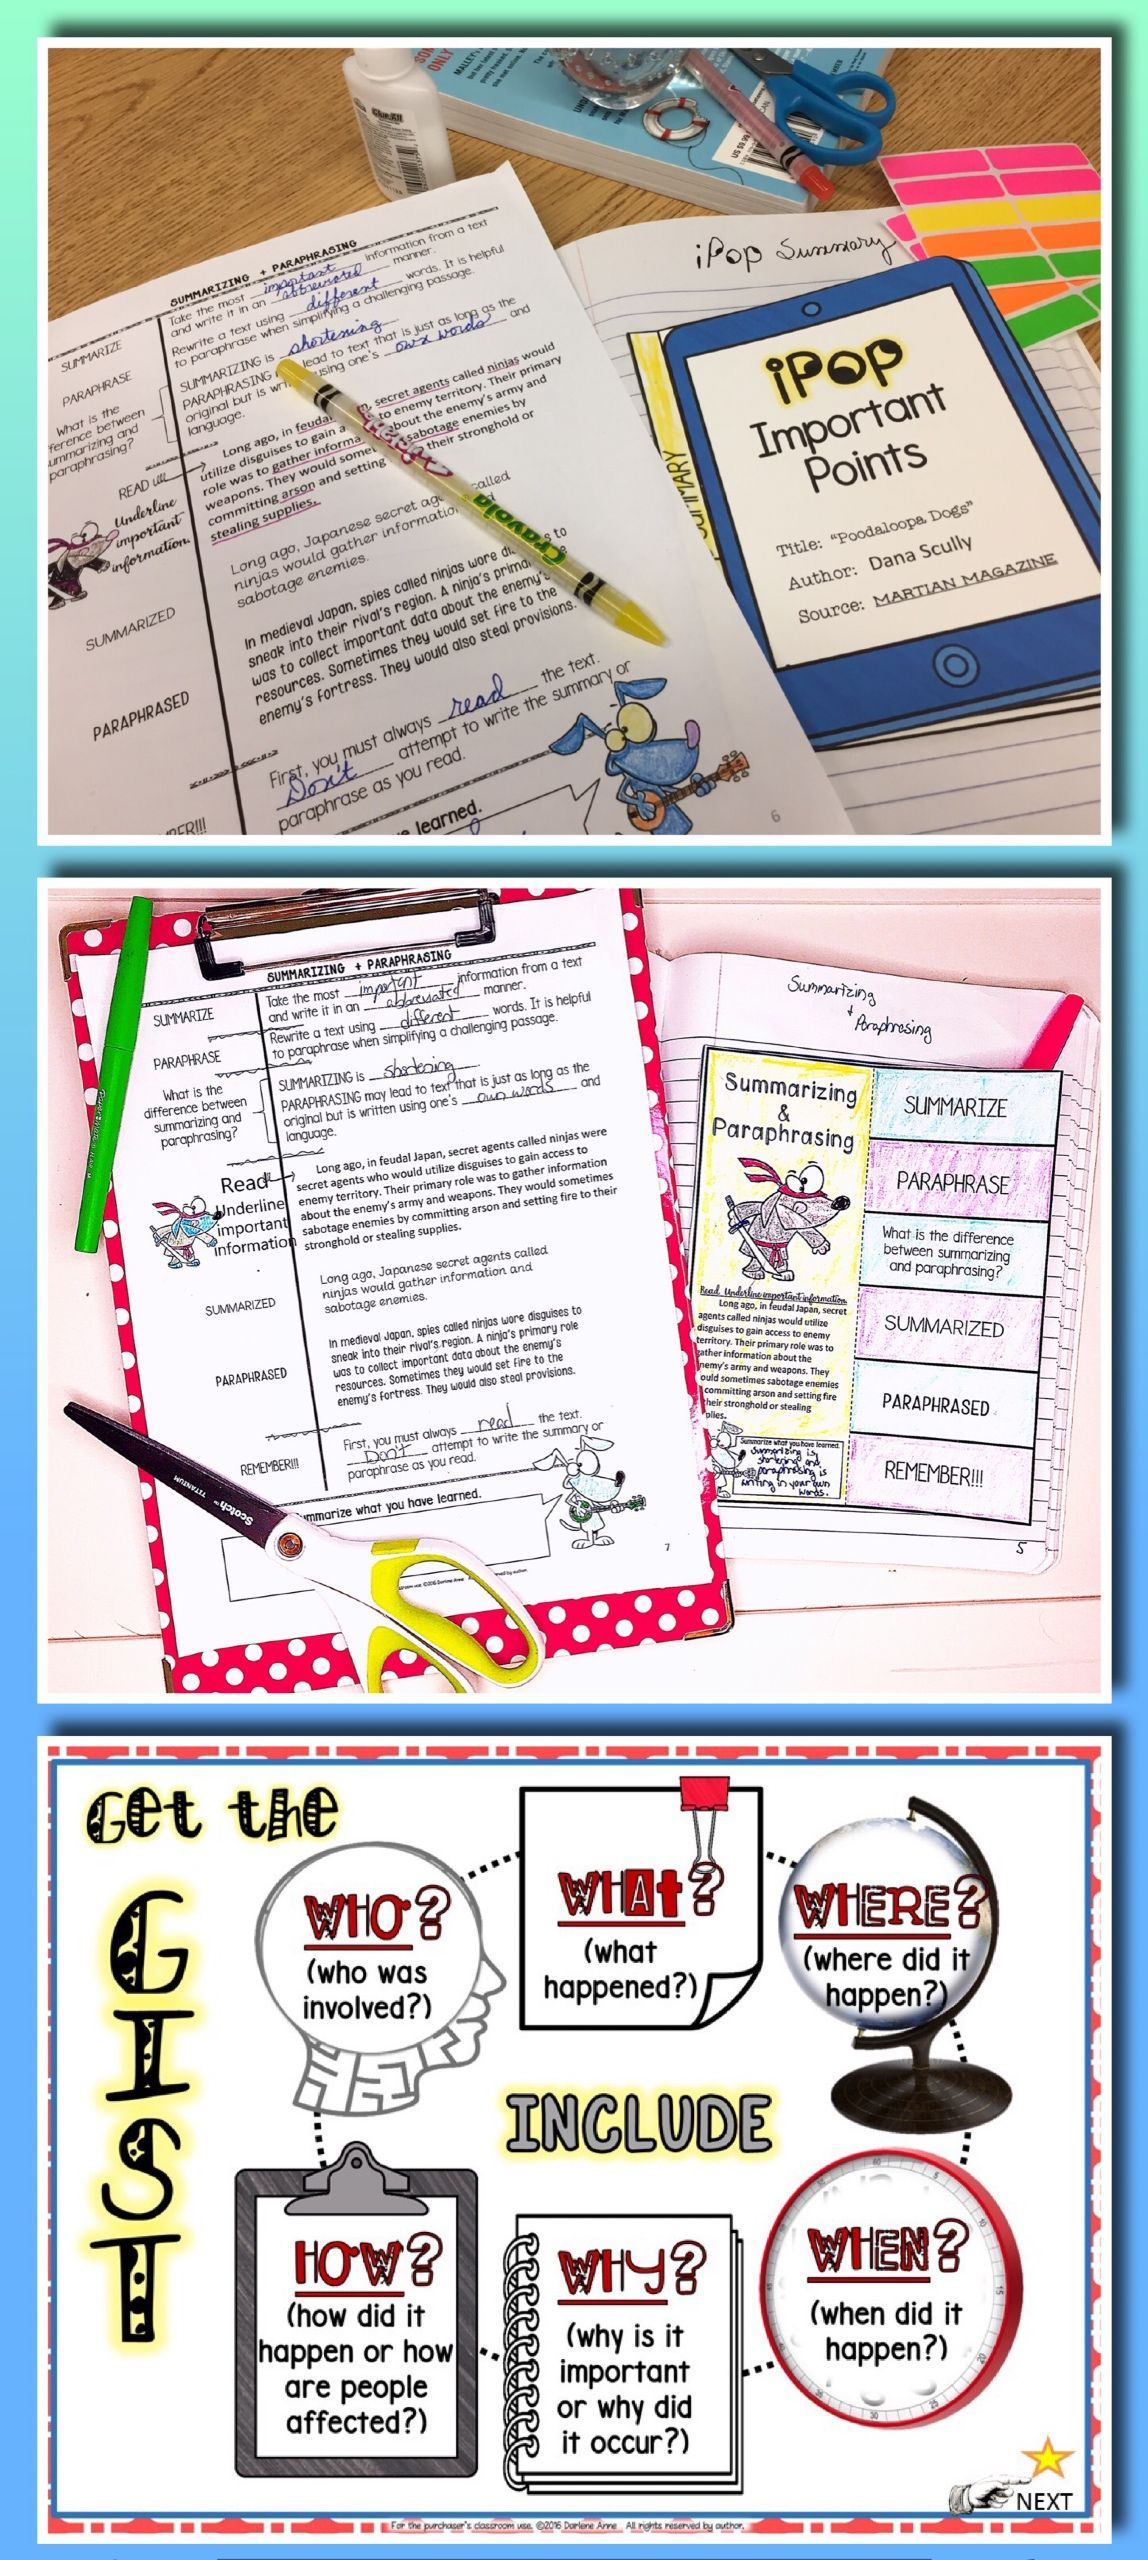 Summarizing and paraphrasing: practice worksheets and assessment ...